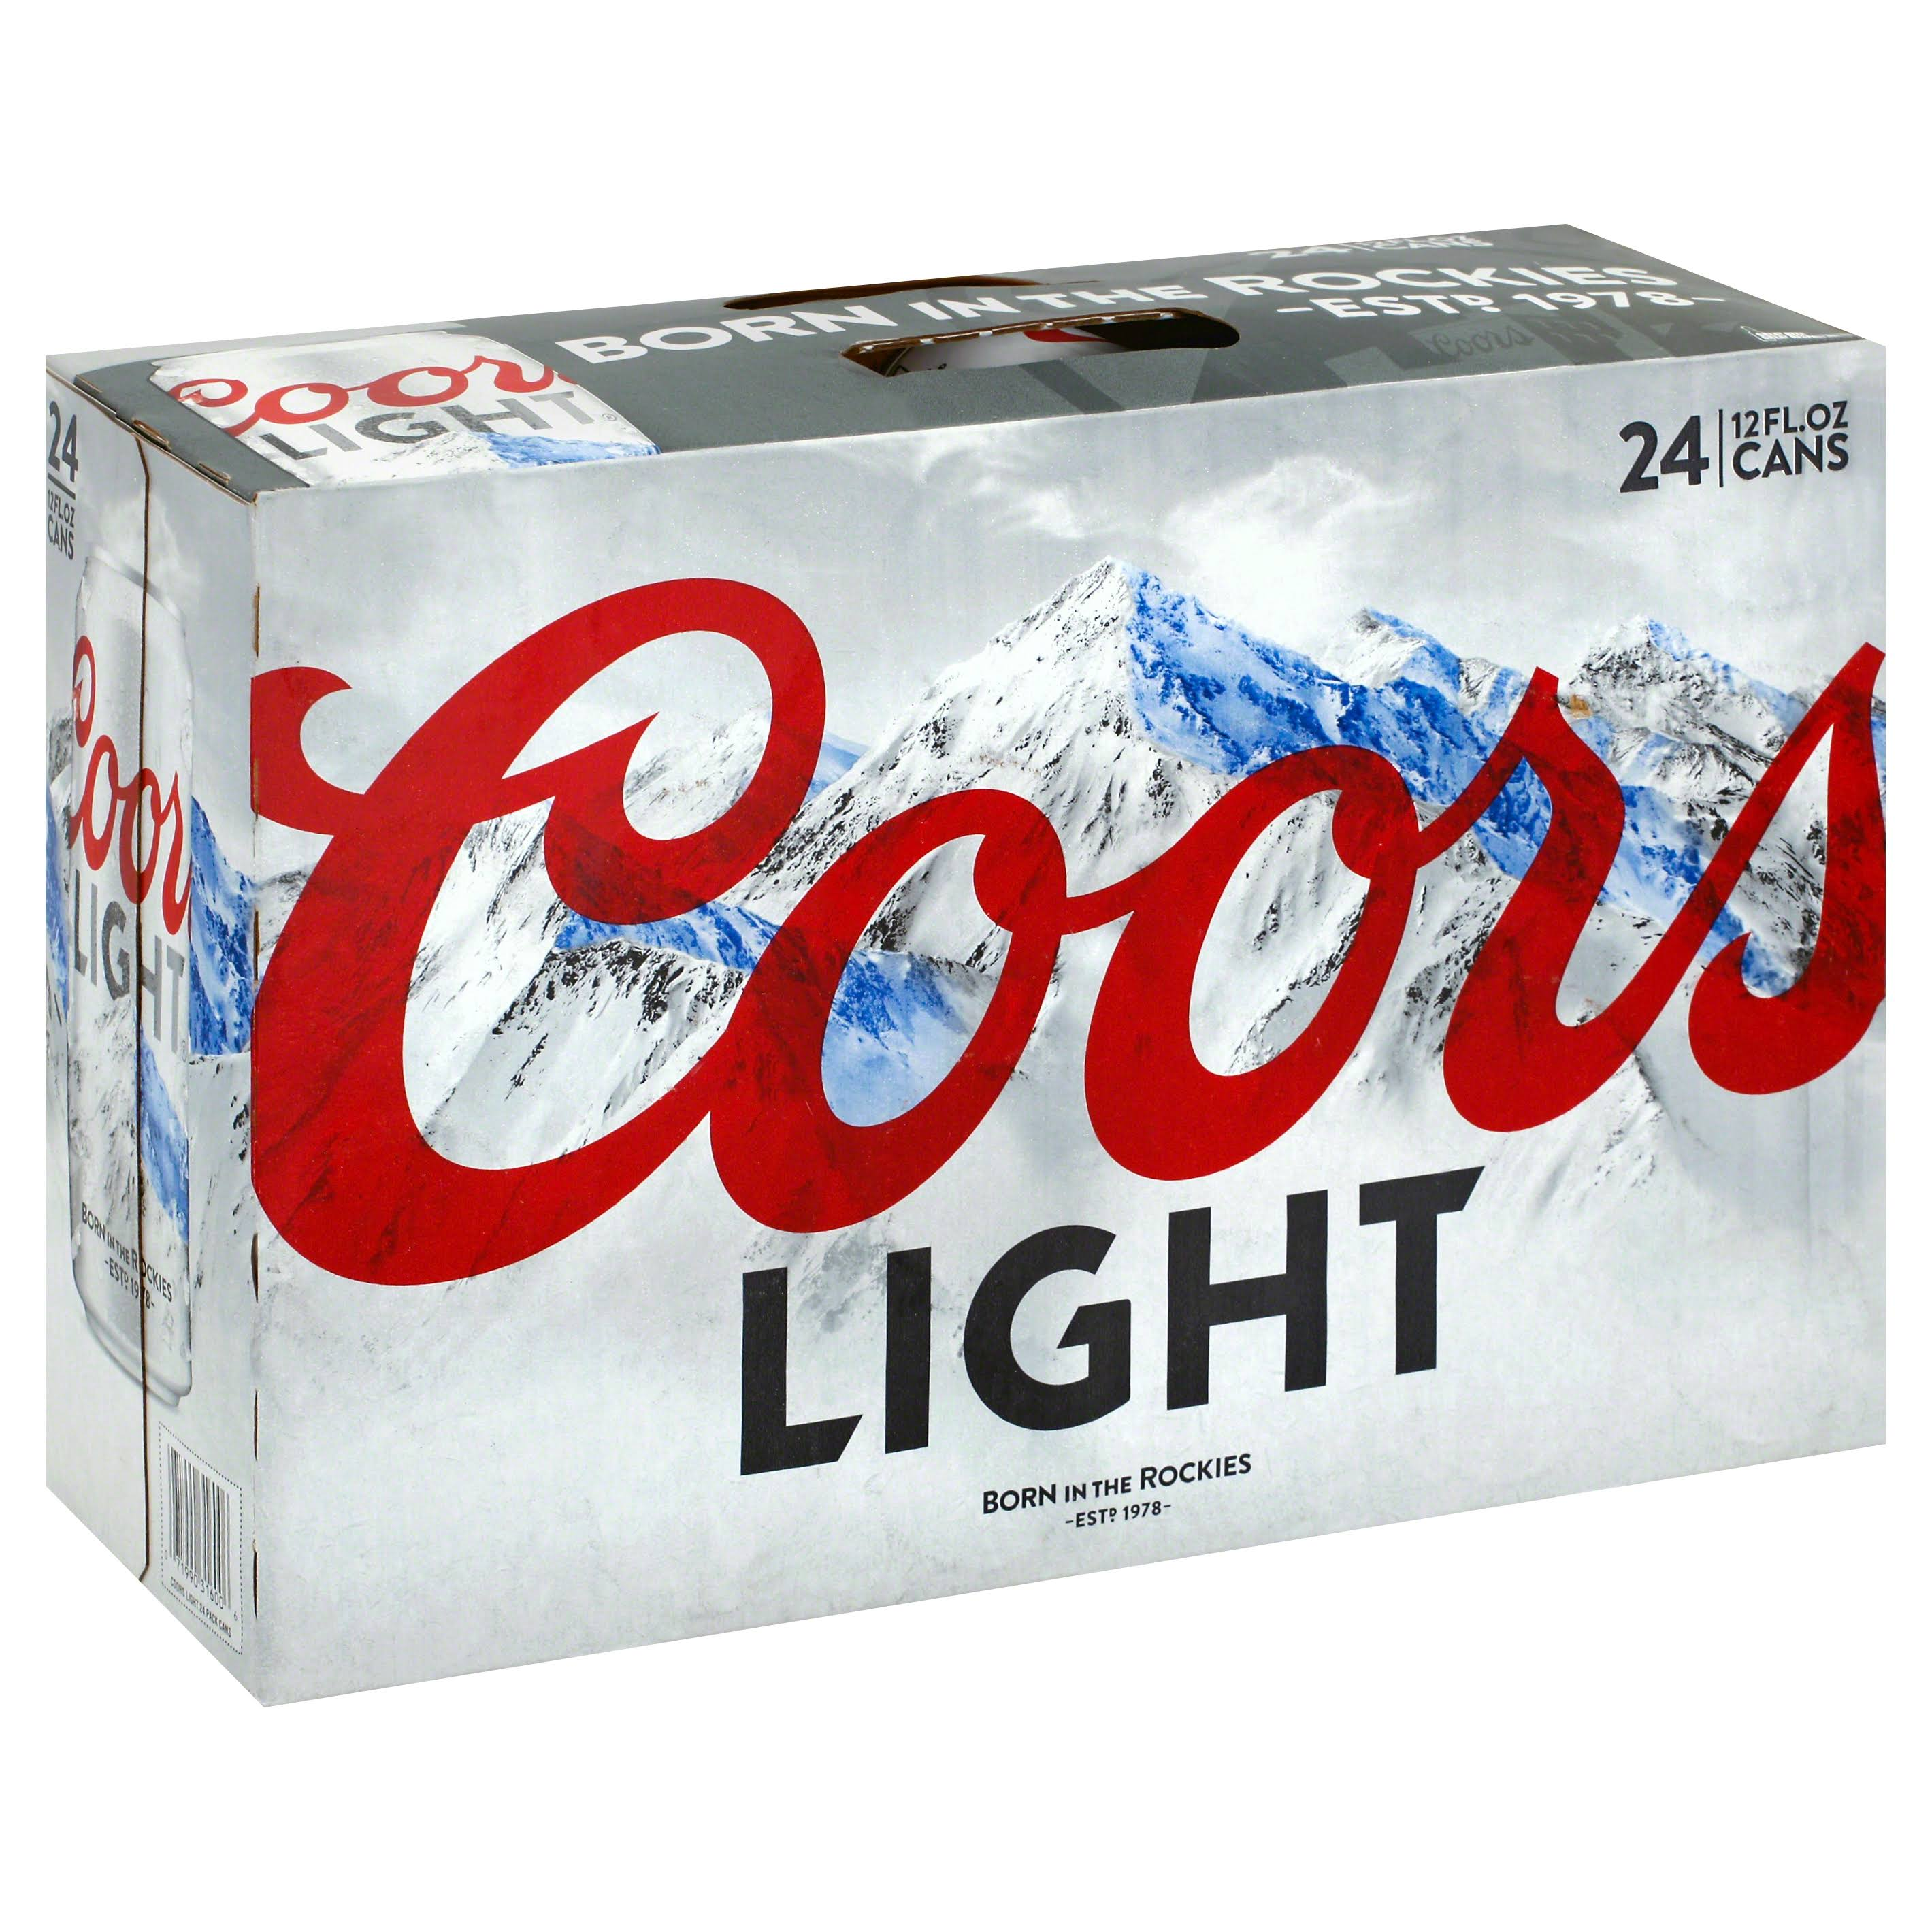 Coors Light Beer - 12oz, 24 Pack